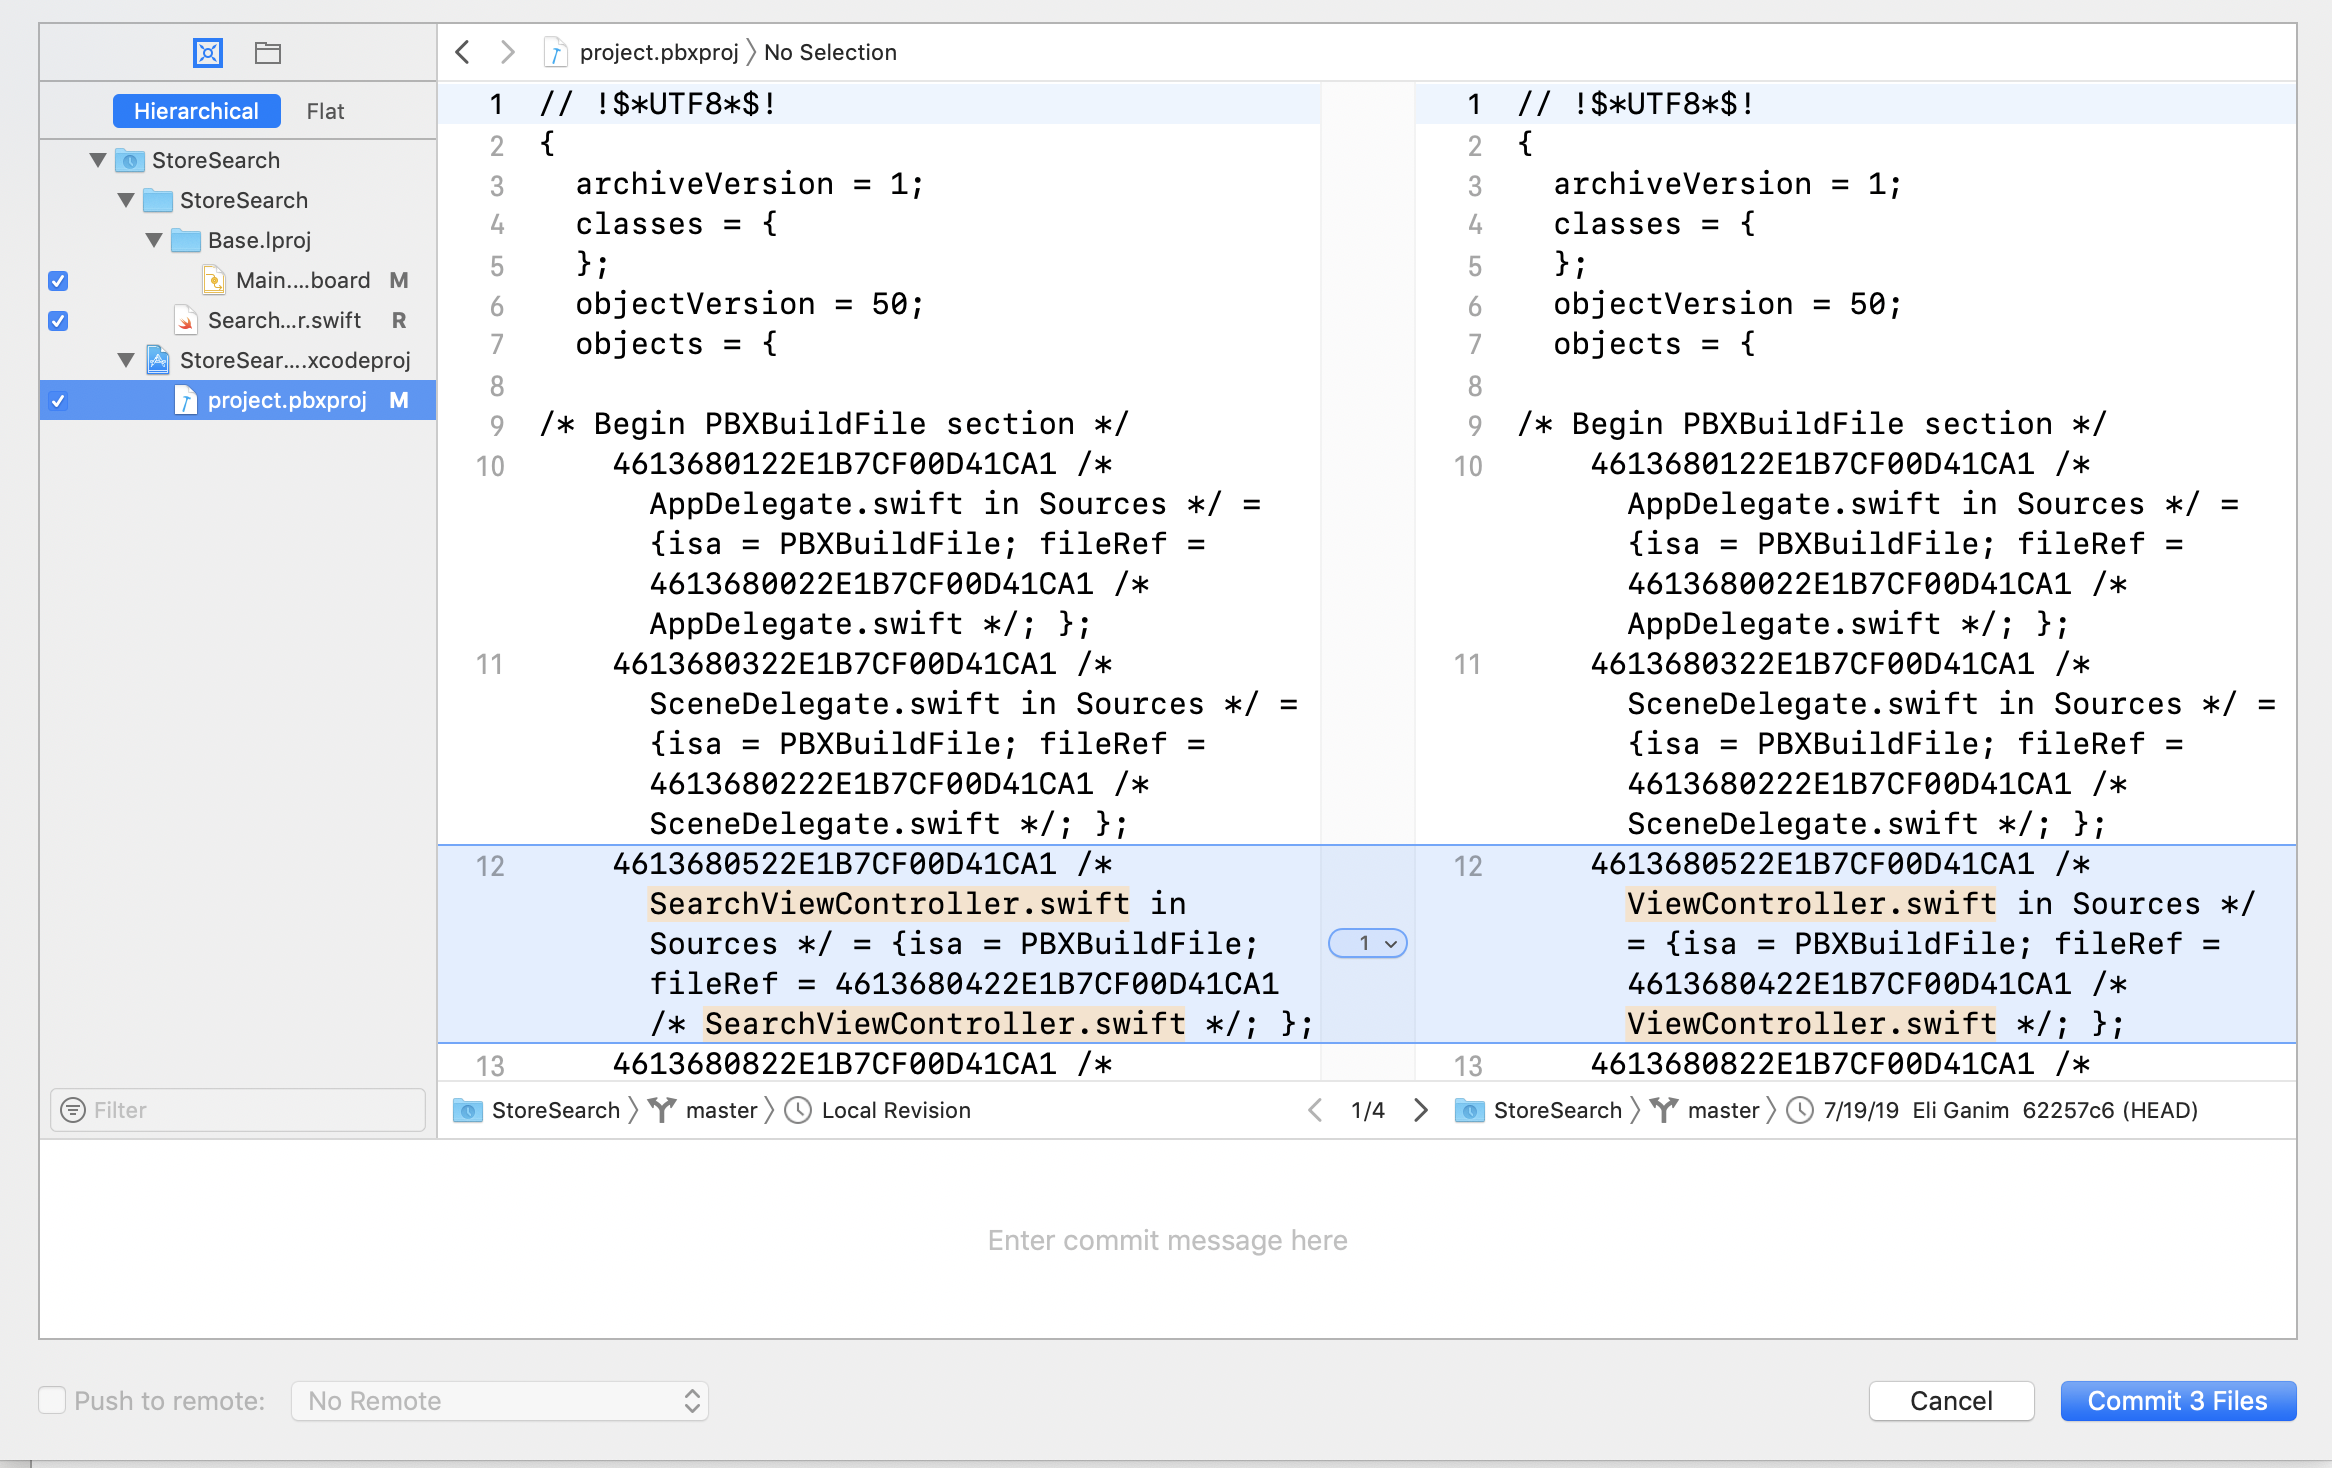 Xcode shows the changes you've made since the last commit